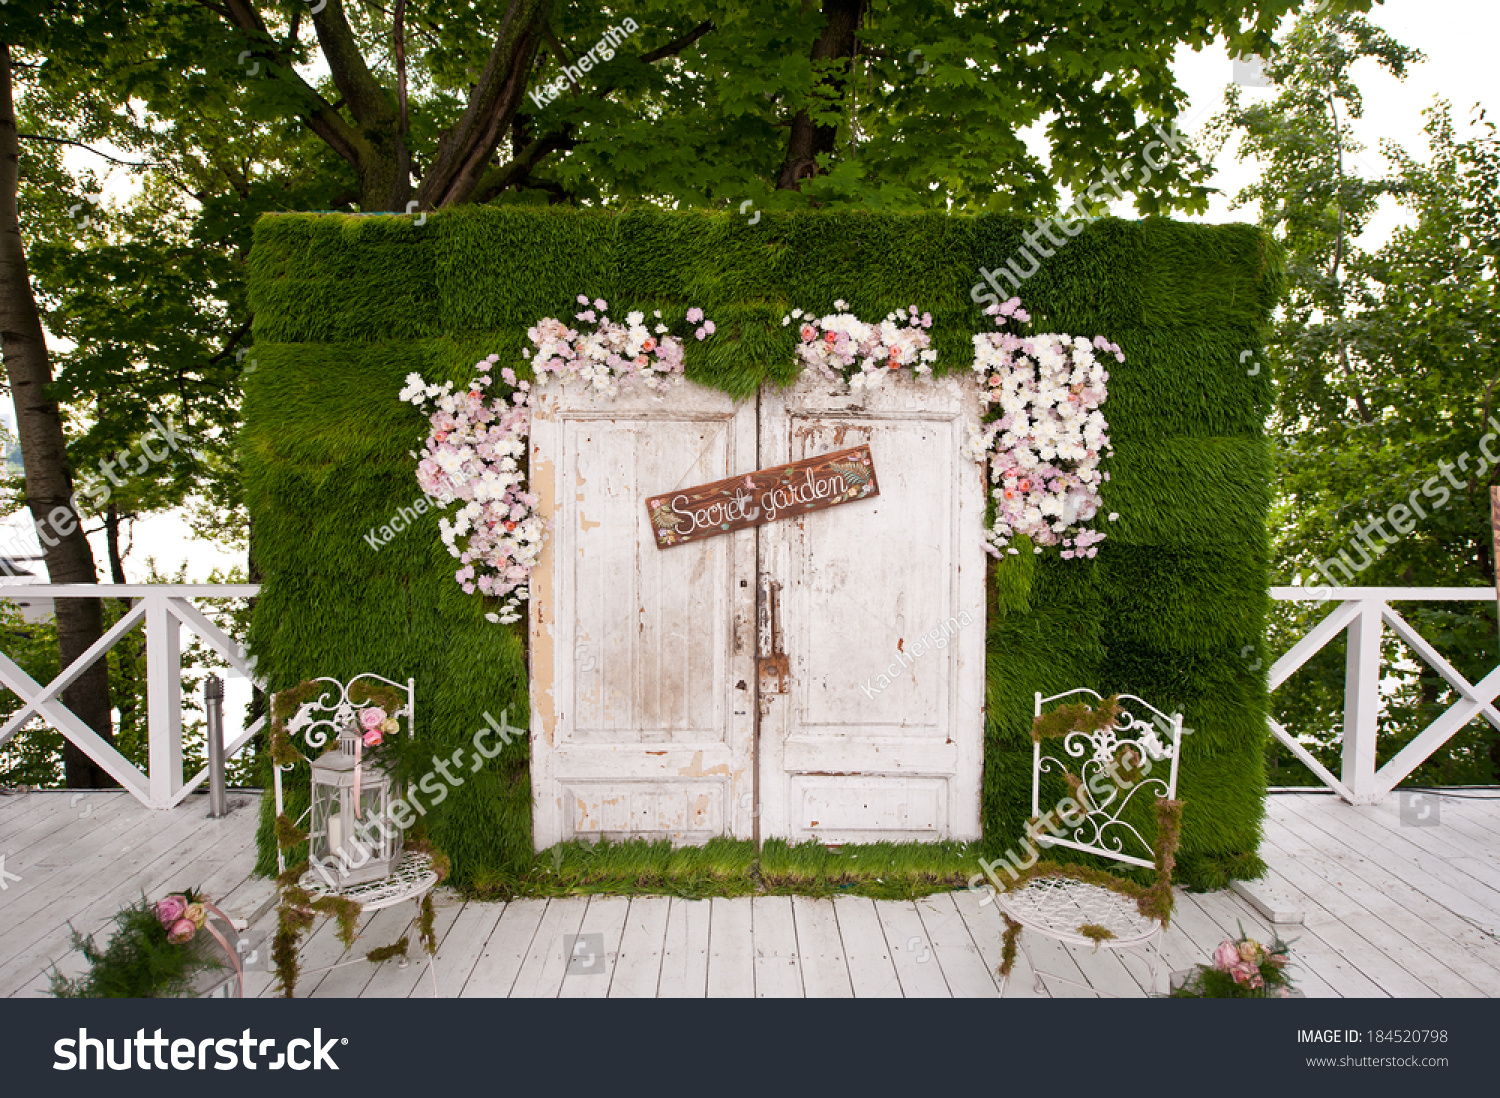 Wedding photo booth decoration 184520798 shutterstock for Photo decoration ideas